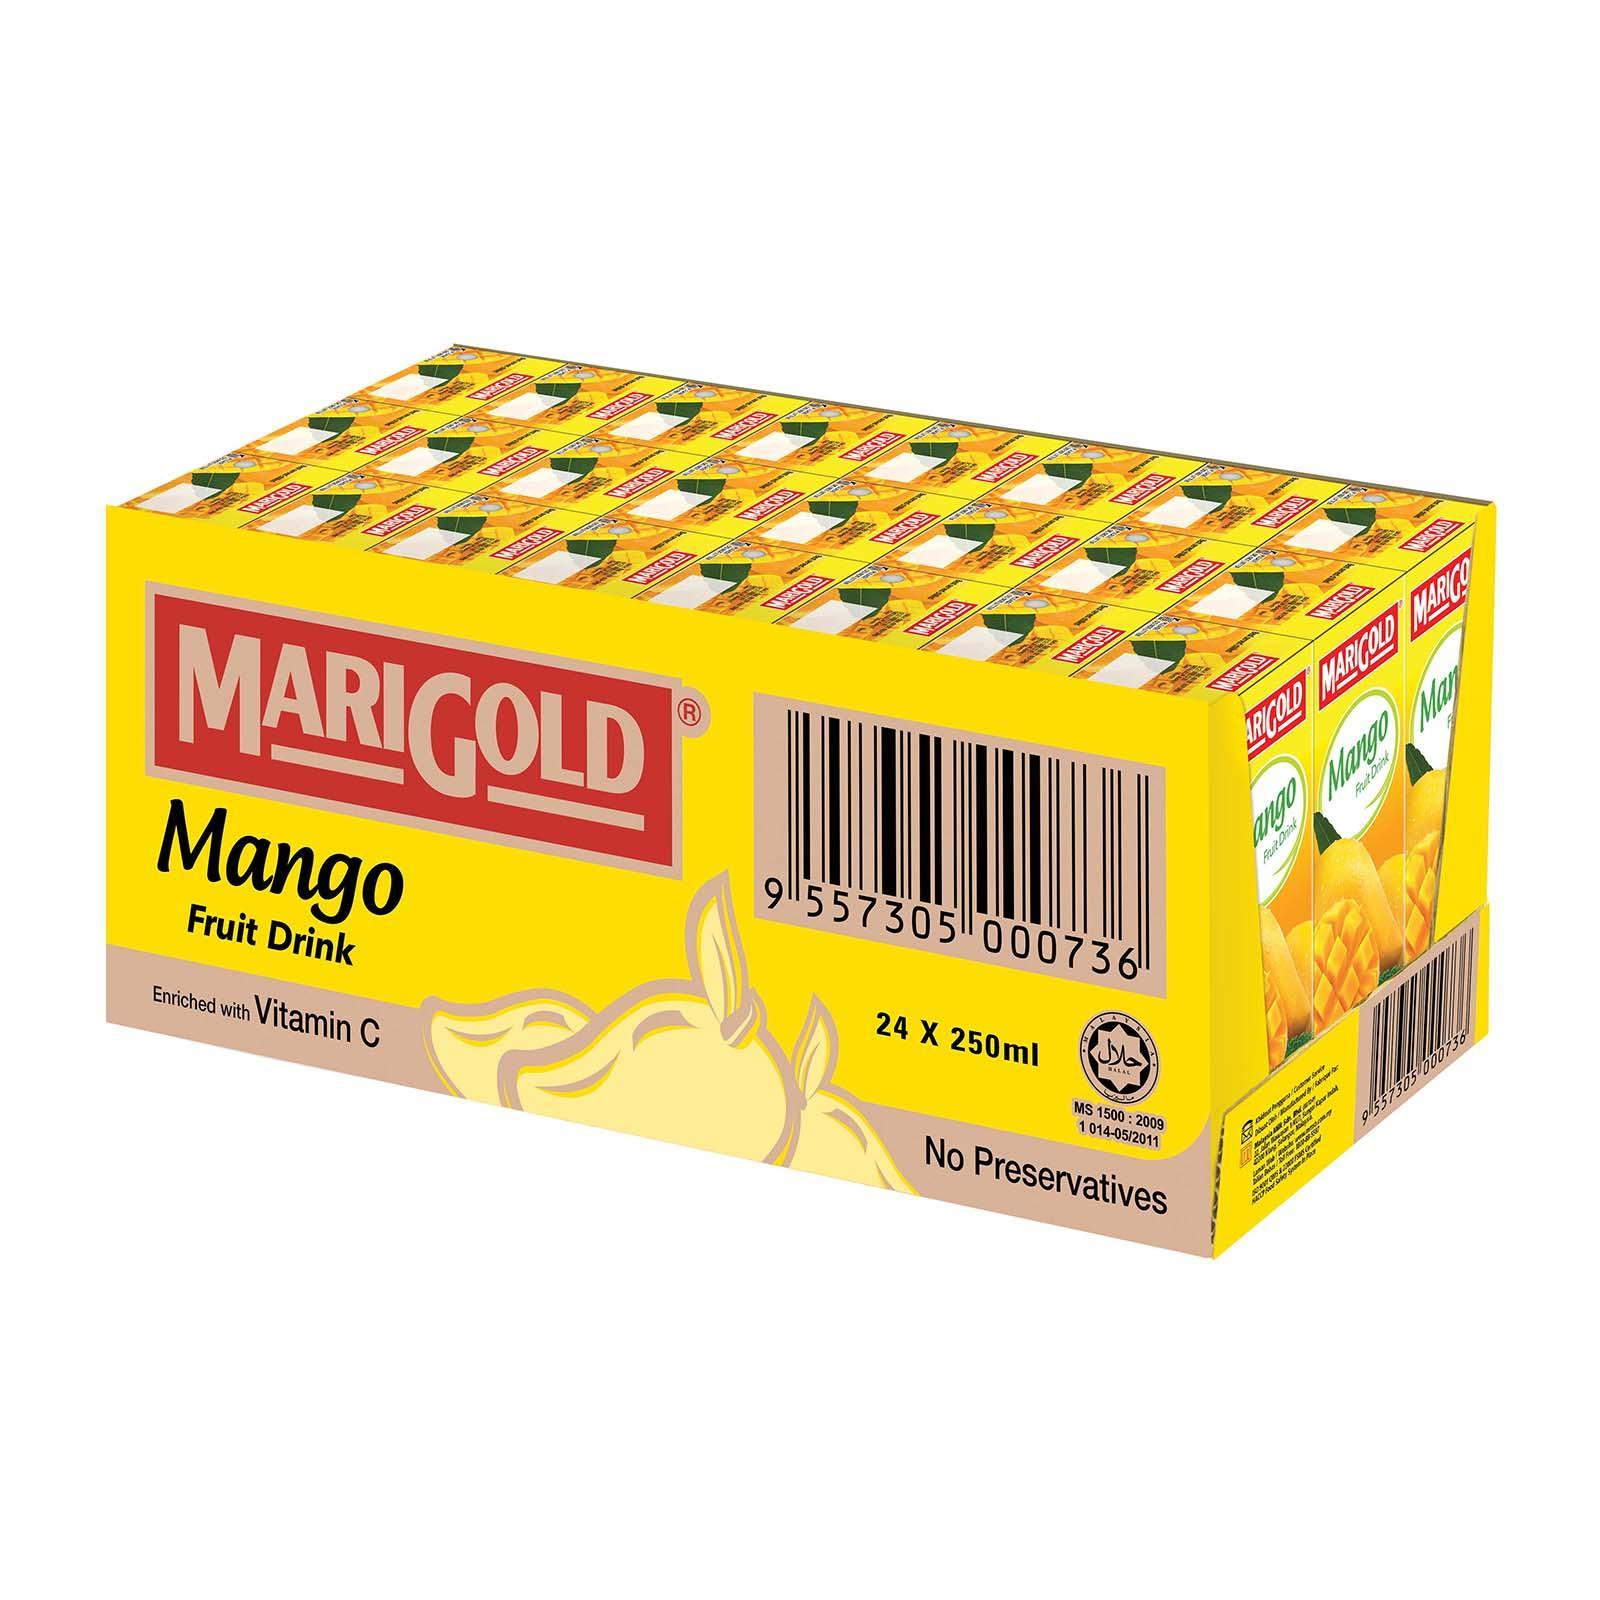 MARIGOLD Mango Juice Drink - Case